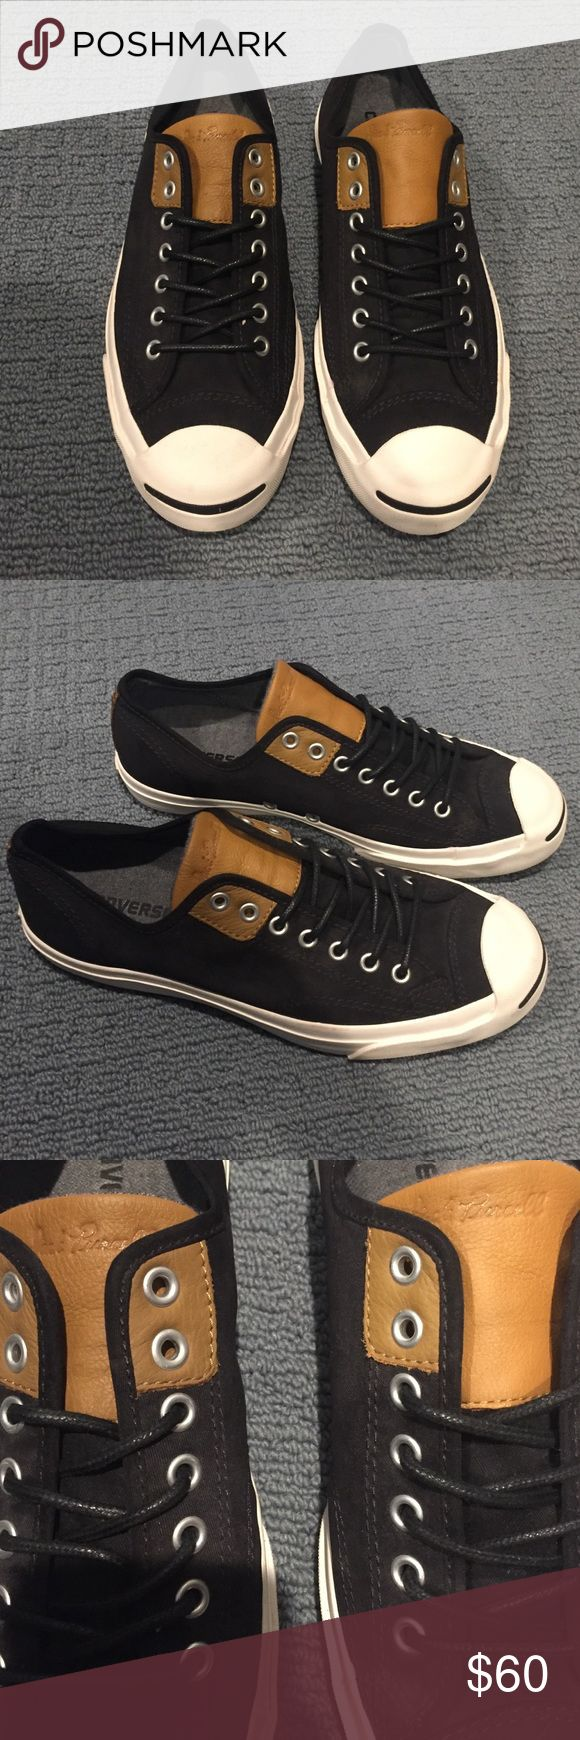 Jack Purcell Converse with Leather Accents This is a very cool pair of black Jack Purcell converse with light taupe accents. Never worn and sure to make any man's wardrobe! Converse Shoes Sneakers